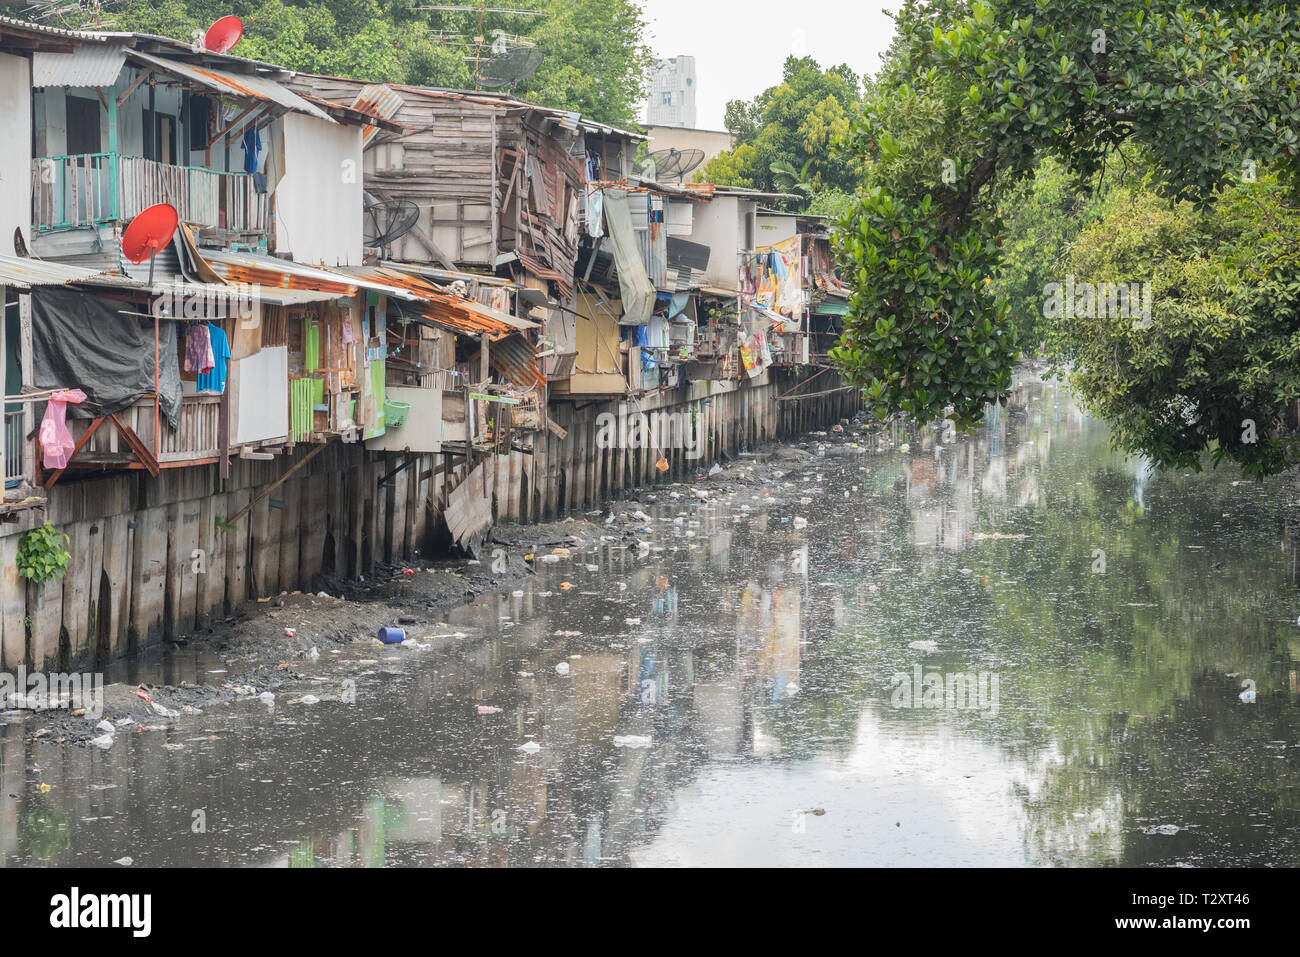 Bangkok, Thailand - September 25, 2018: slums along a smelly canal (Khlong Toei) full of mud and garbage in Khlong Toei District. - Stock Image